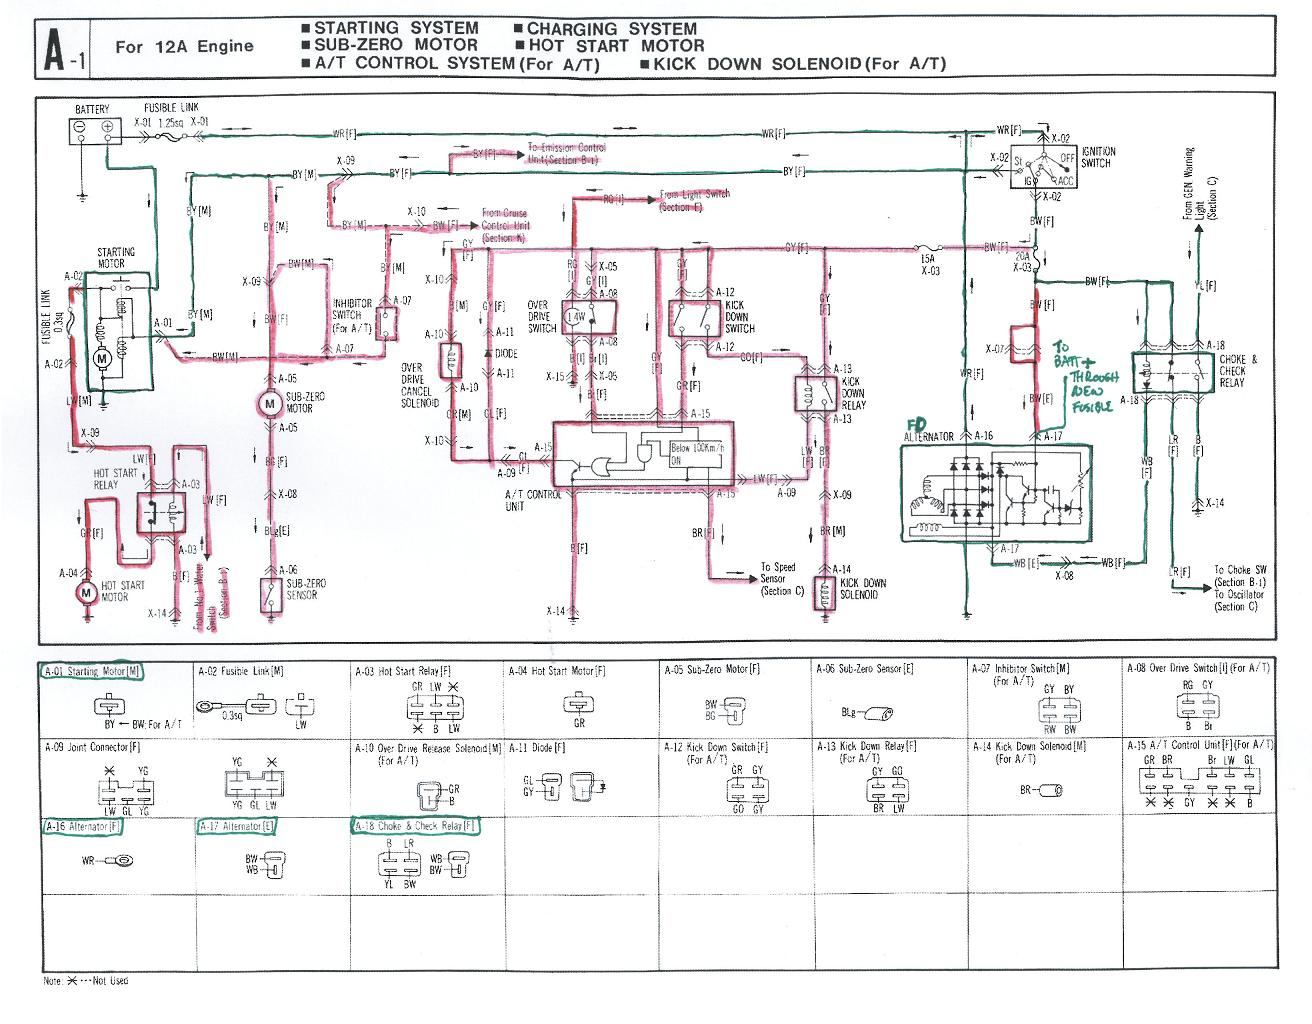 a4ea6a0 kenworth t600 fuse box diagram | wiring resources  changeip.org